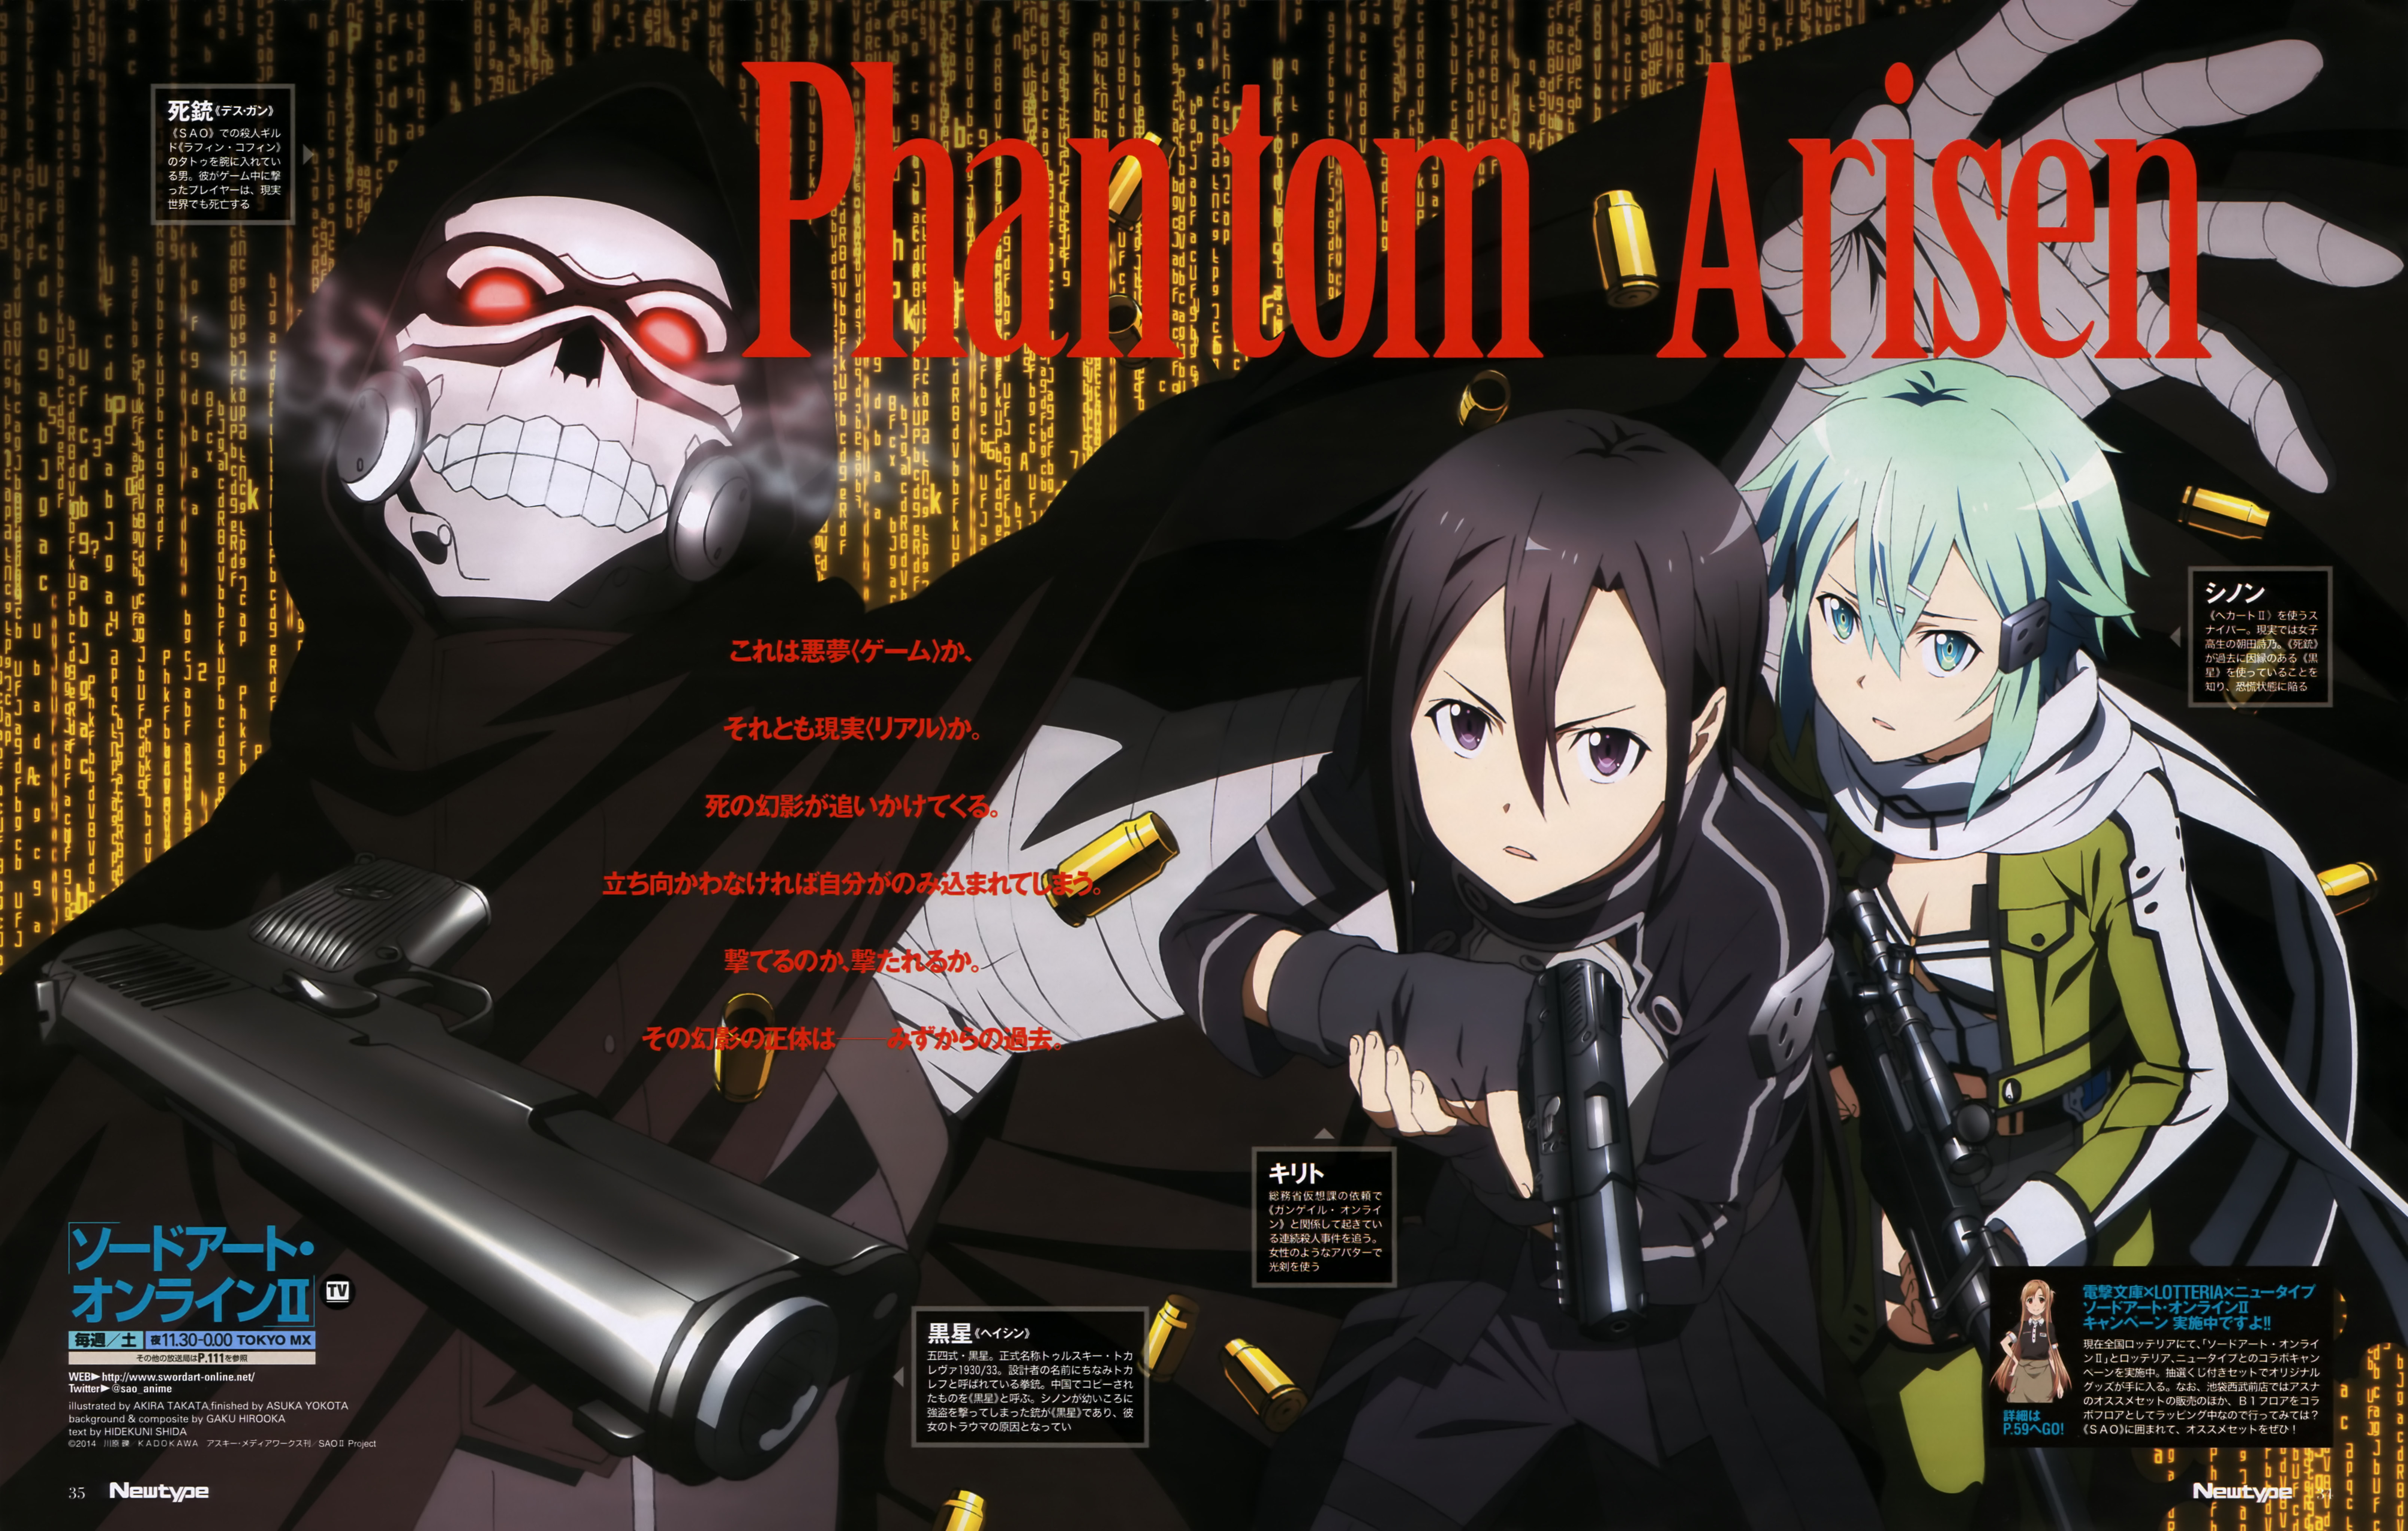 Top 10 Best Anime Series from 2014 According to Animeanime haruhichan.com sword art online 2